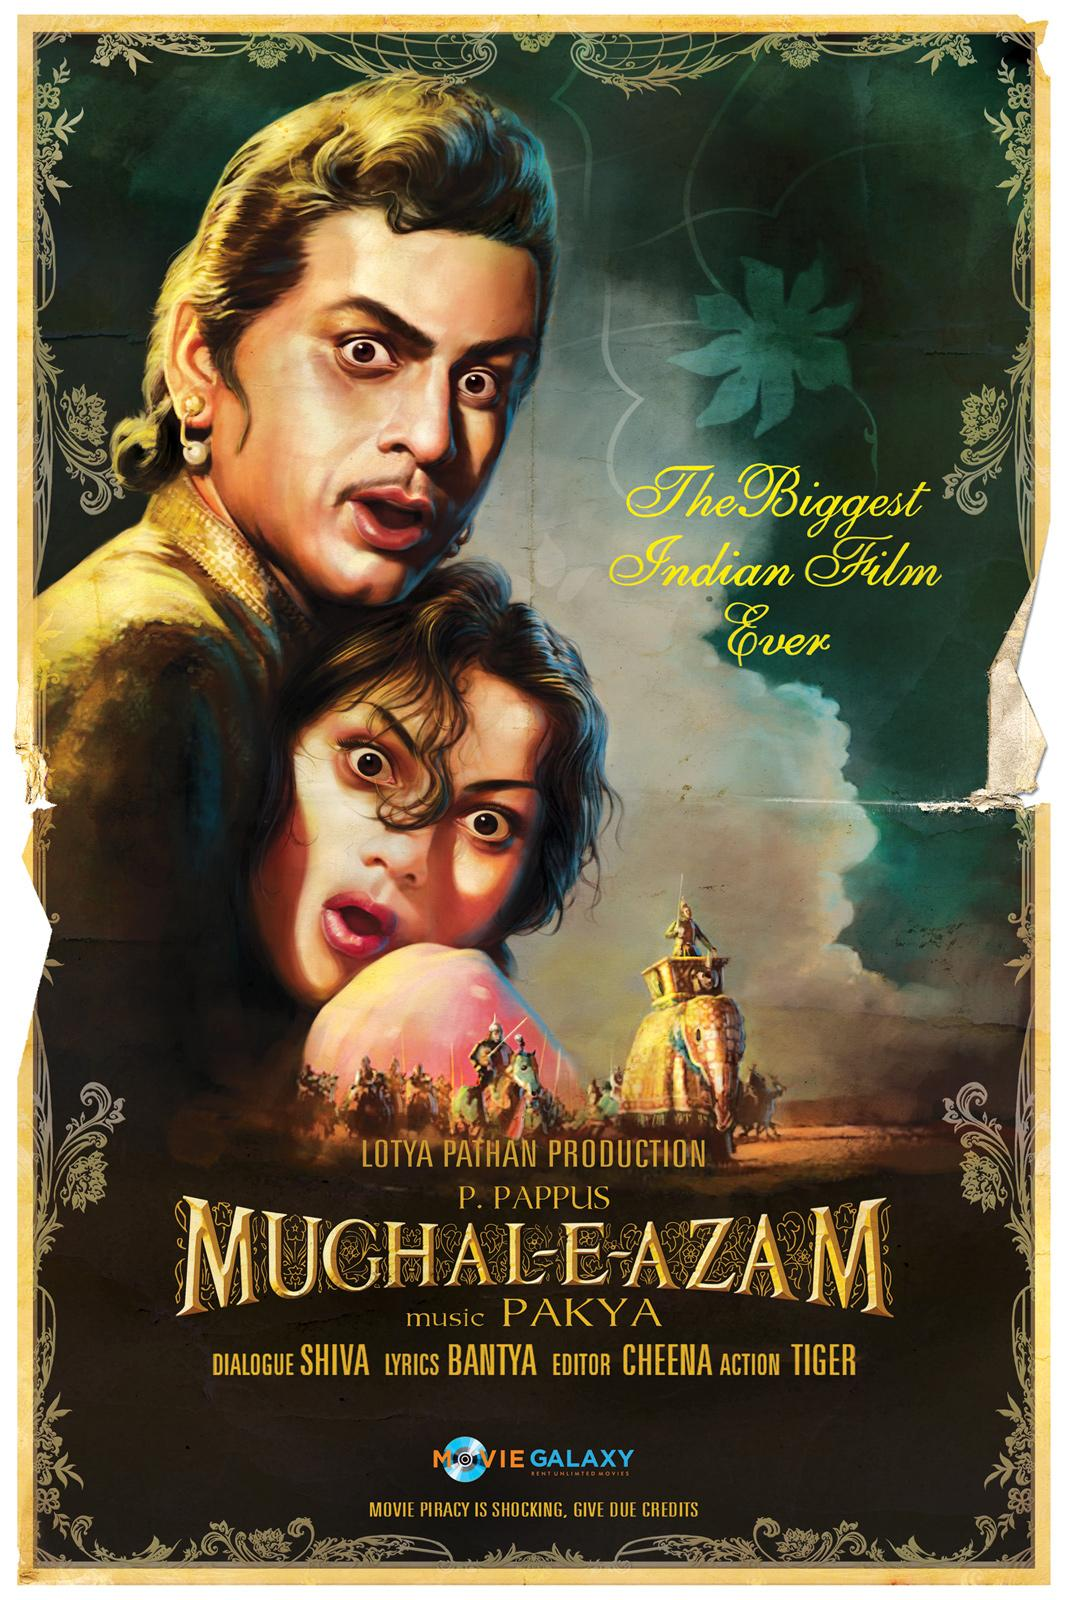 Movie Galaxy Outdoor Ad -  Piracy is Shocking, Mughal-e-azam